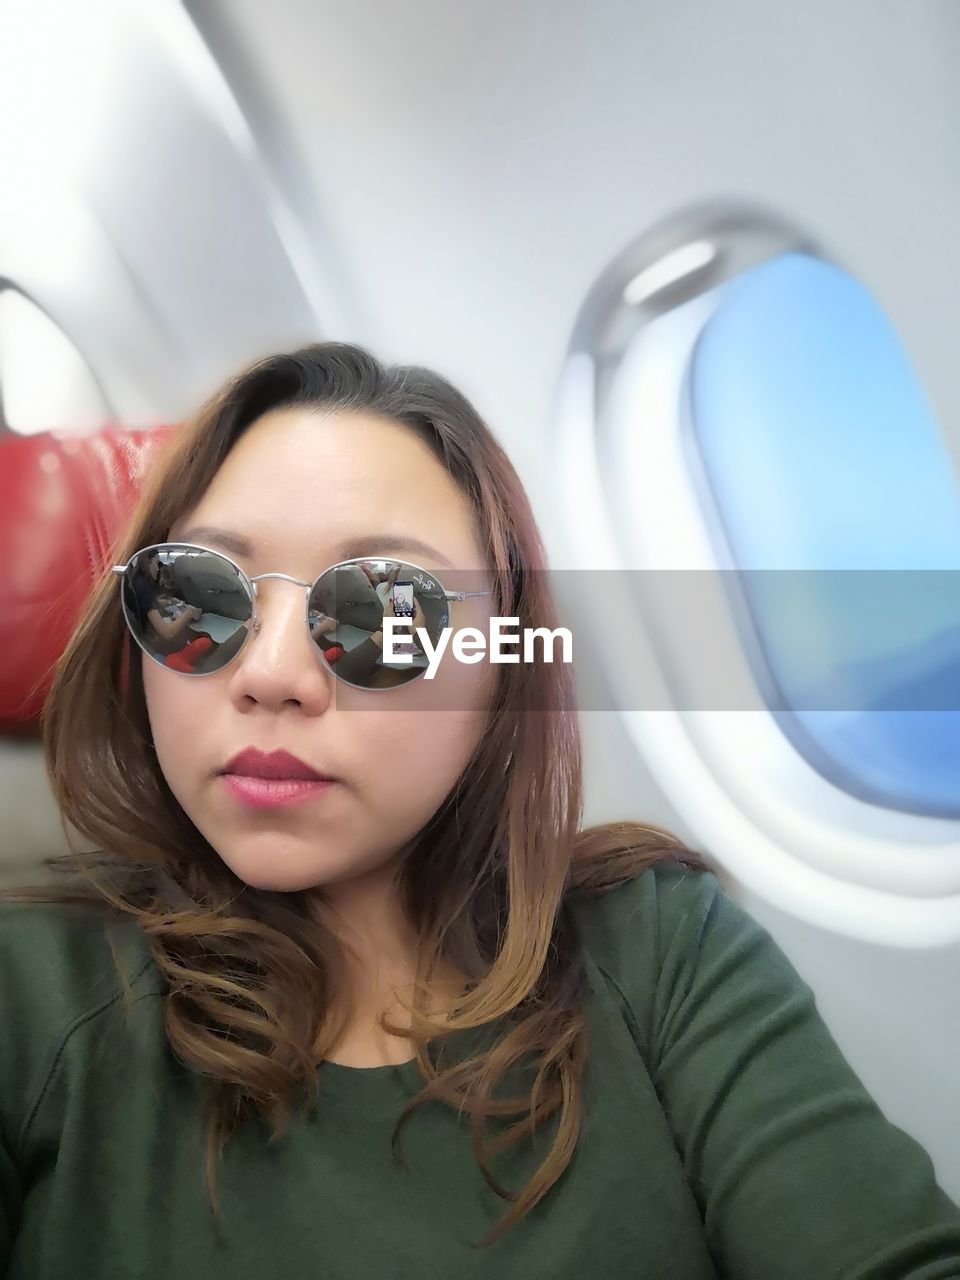 Portrait of woman wearing sunglasses while sitting in airplane